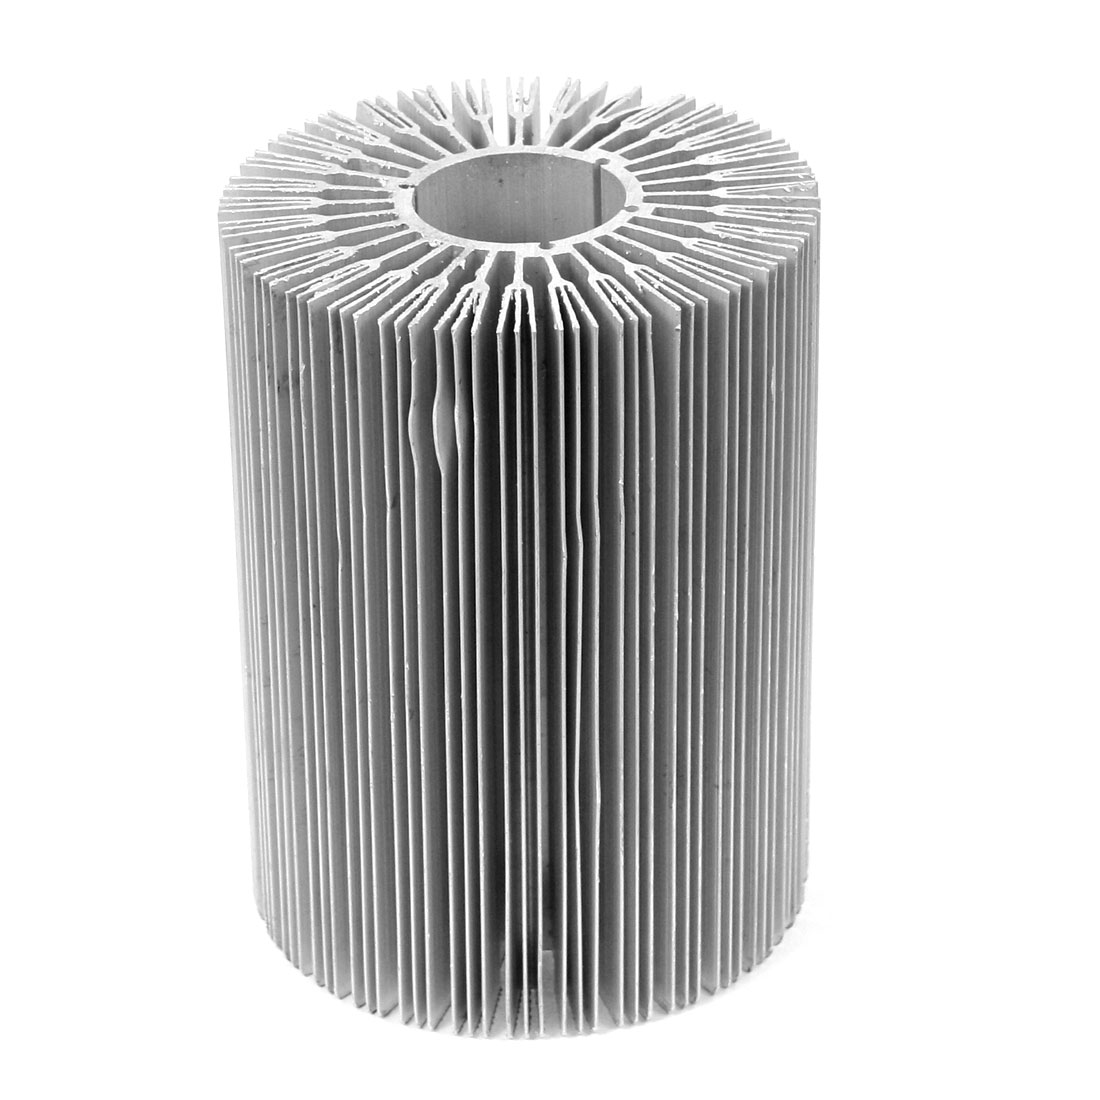 90mm x 120mm Cylinder 40W-50W High Power LED Heatsink Aluminium Cooling Fin